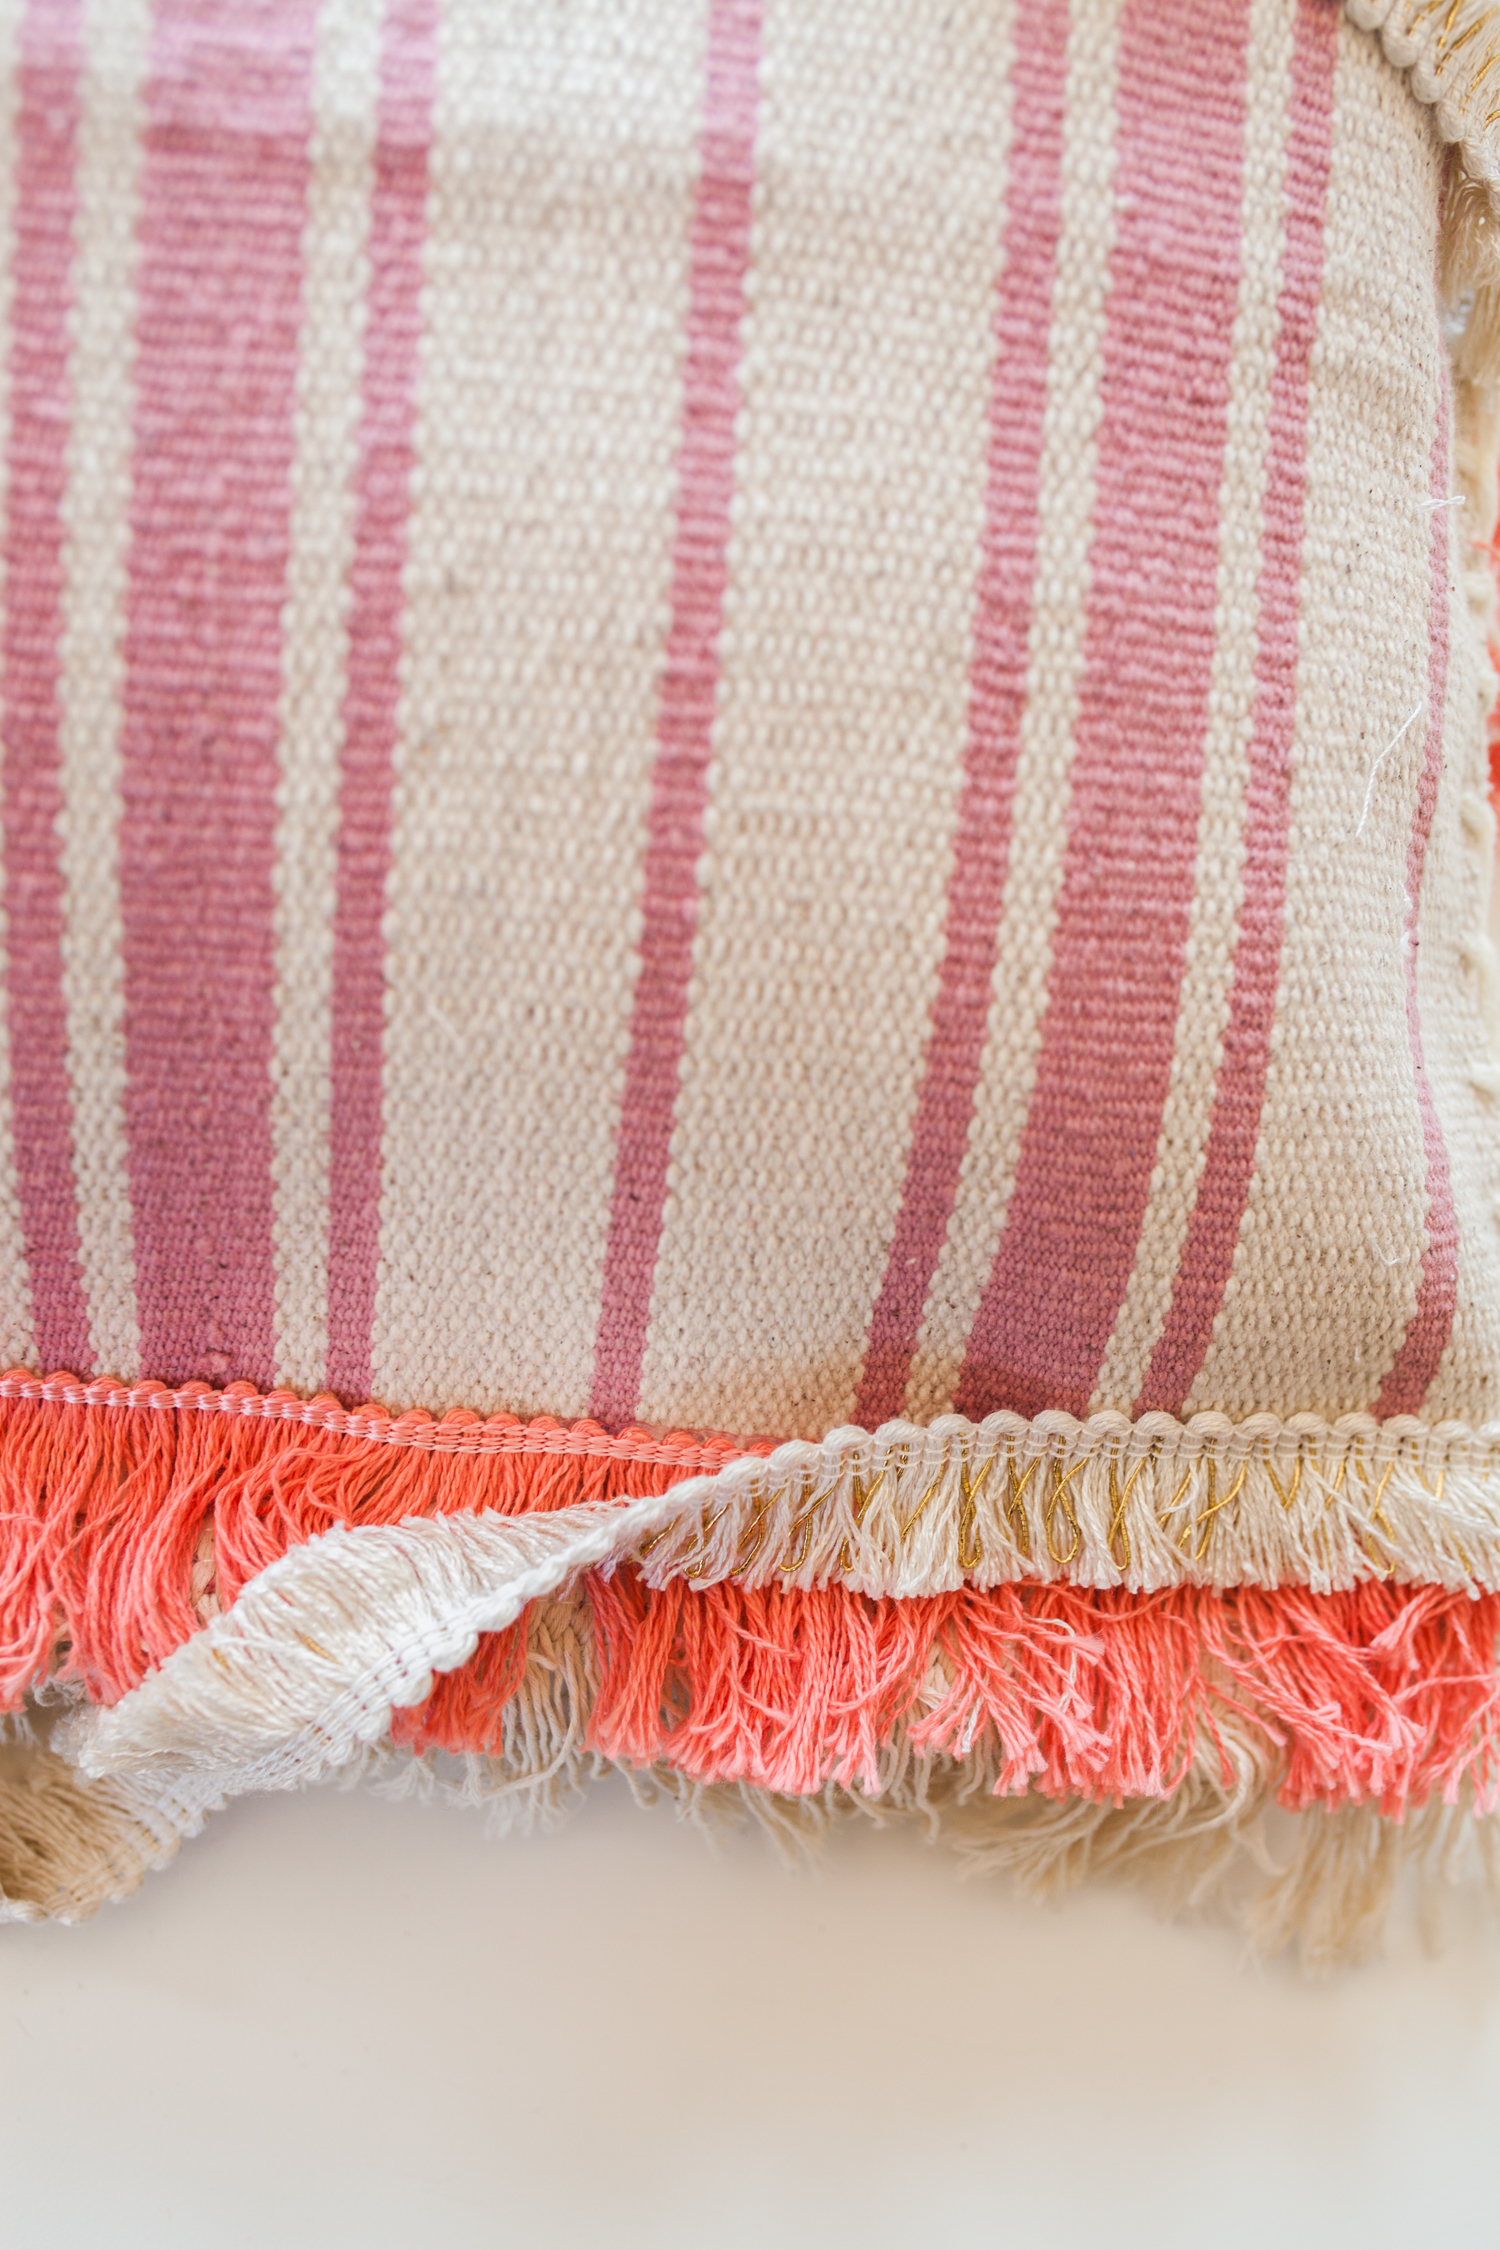 ikea hack throw pillow diy (28 of 67).jpg